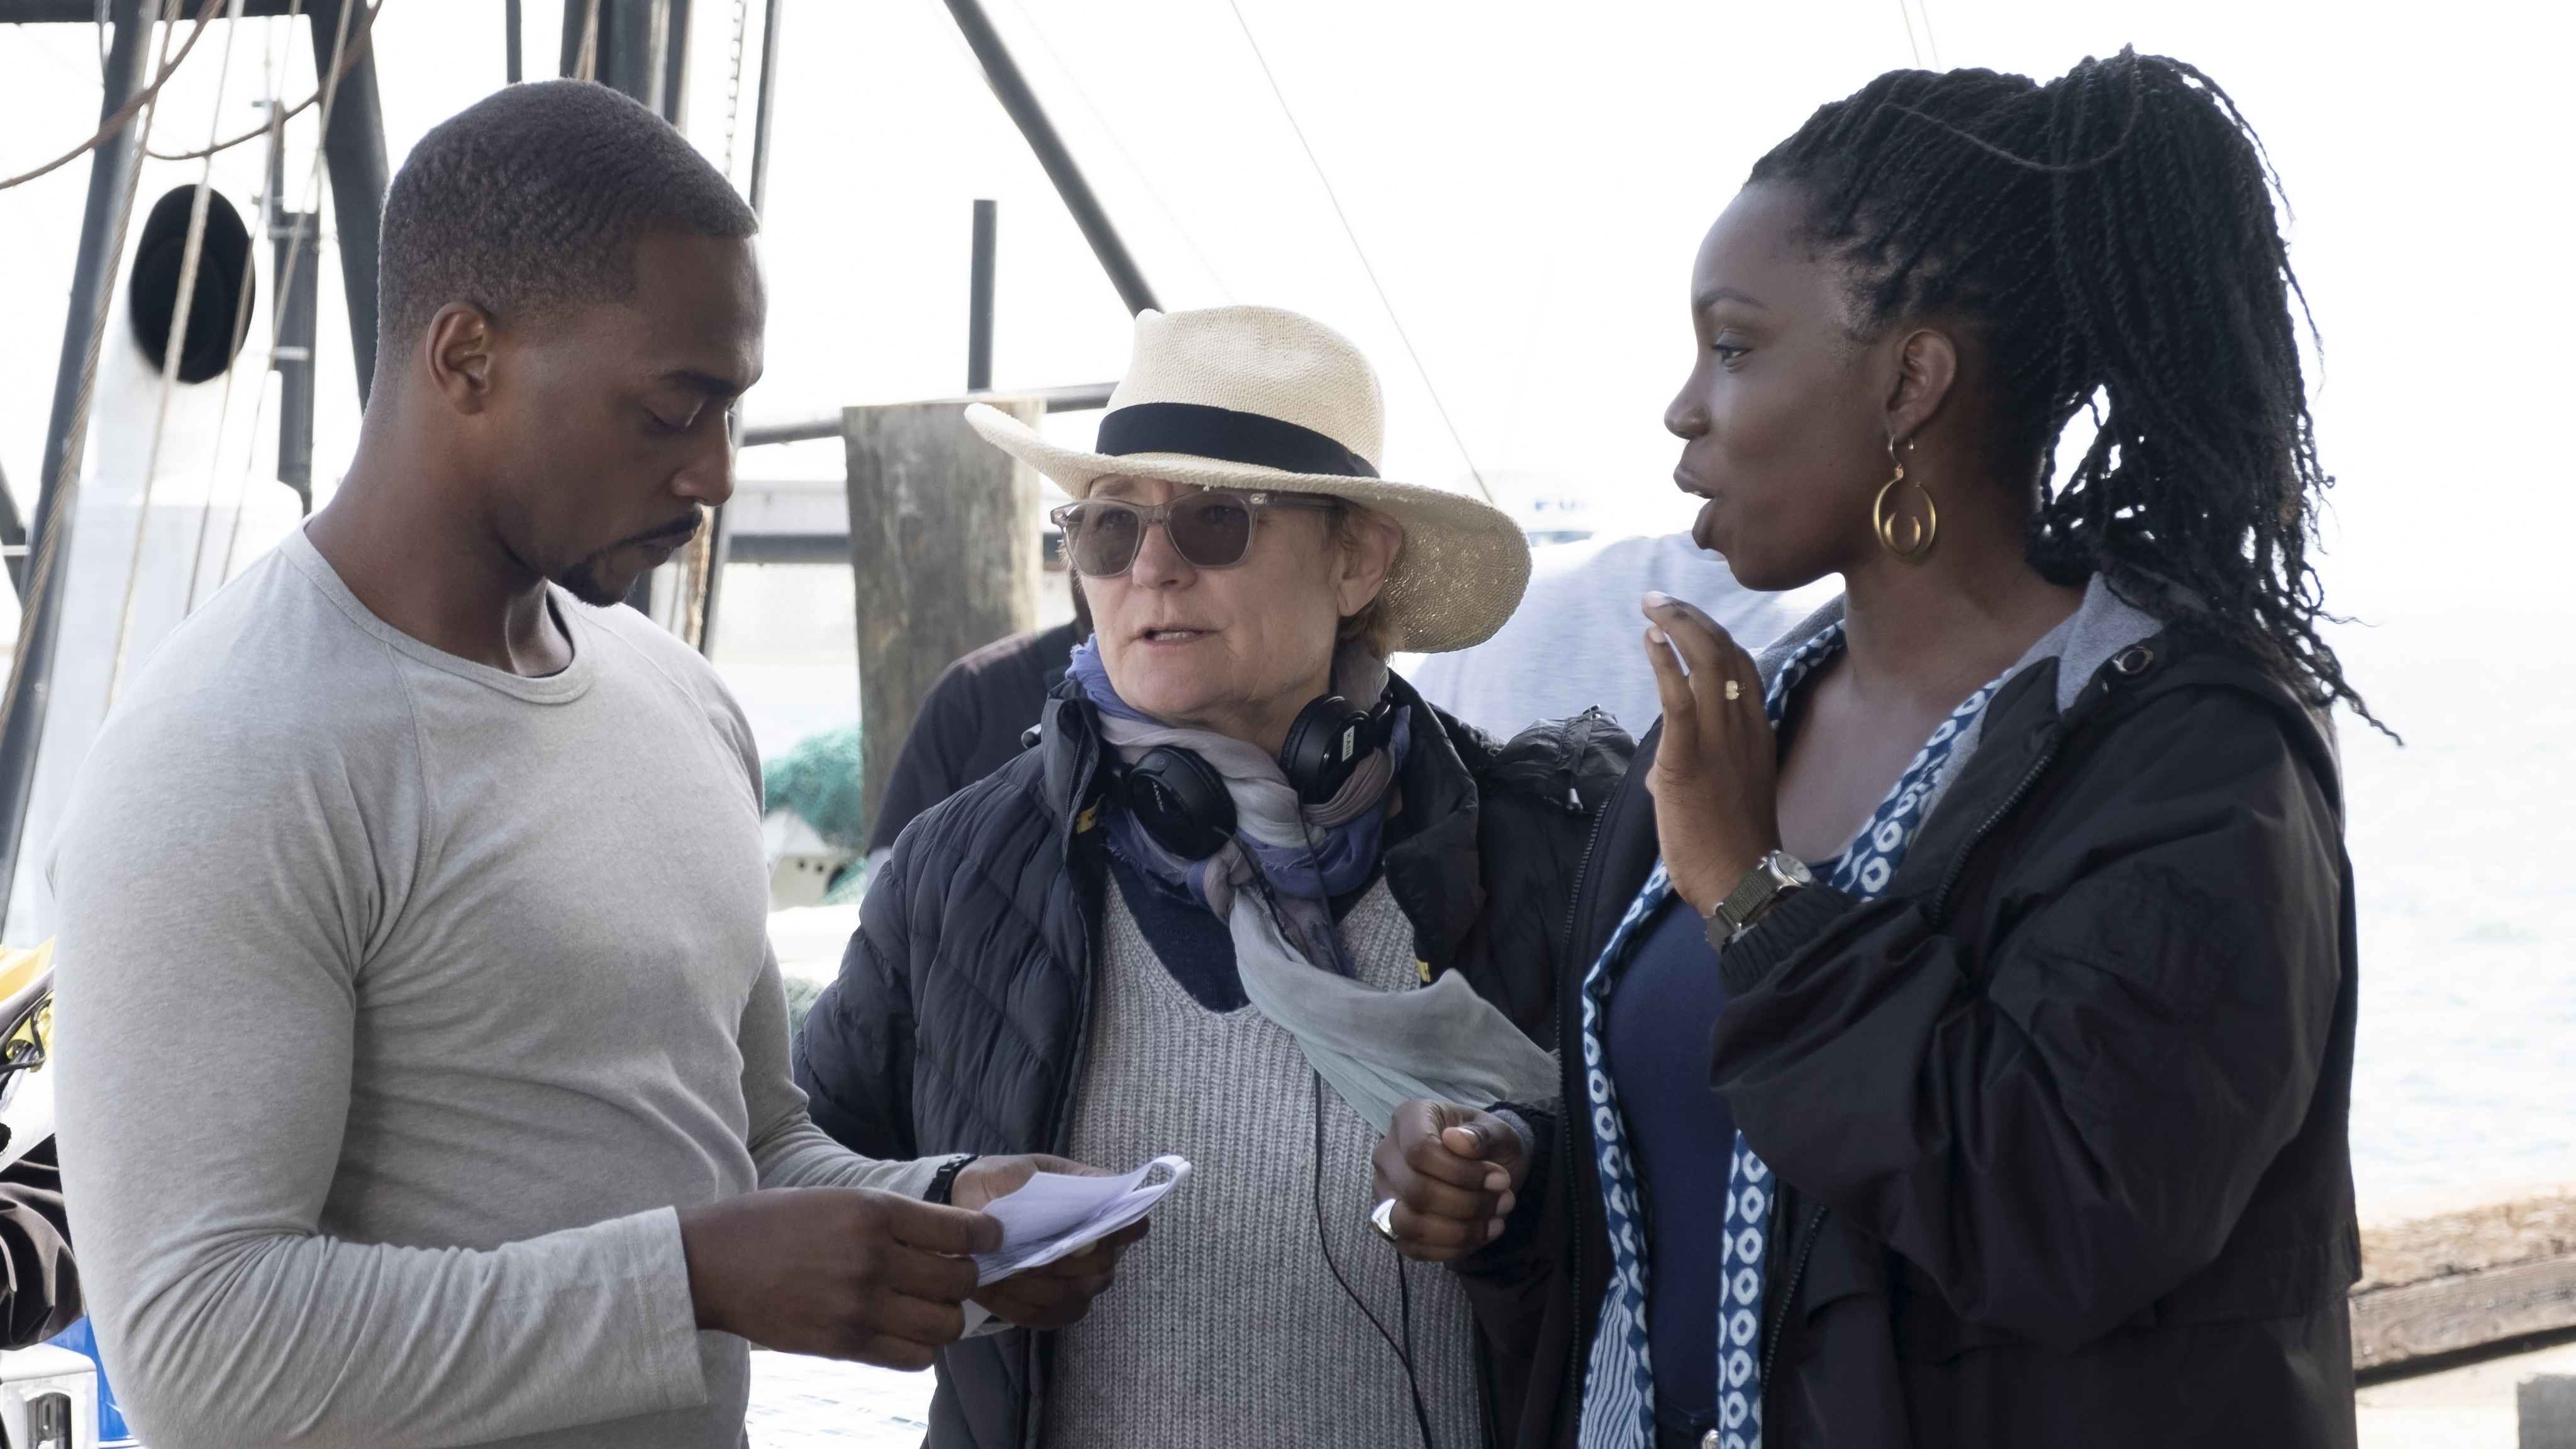 (L-R): Falcon/Sam Wilson (Anthony Mackie), Director Kari Skogland and Sarah Wilson (Adepero Oduye) on the set of Marvel Studios' THE FALCON AND THE WINTER SOLDIER exclusively on Disney+. Photo by Chuck Zlotnick. ©Marvel Studios 2021. All Rights Reserved.